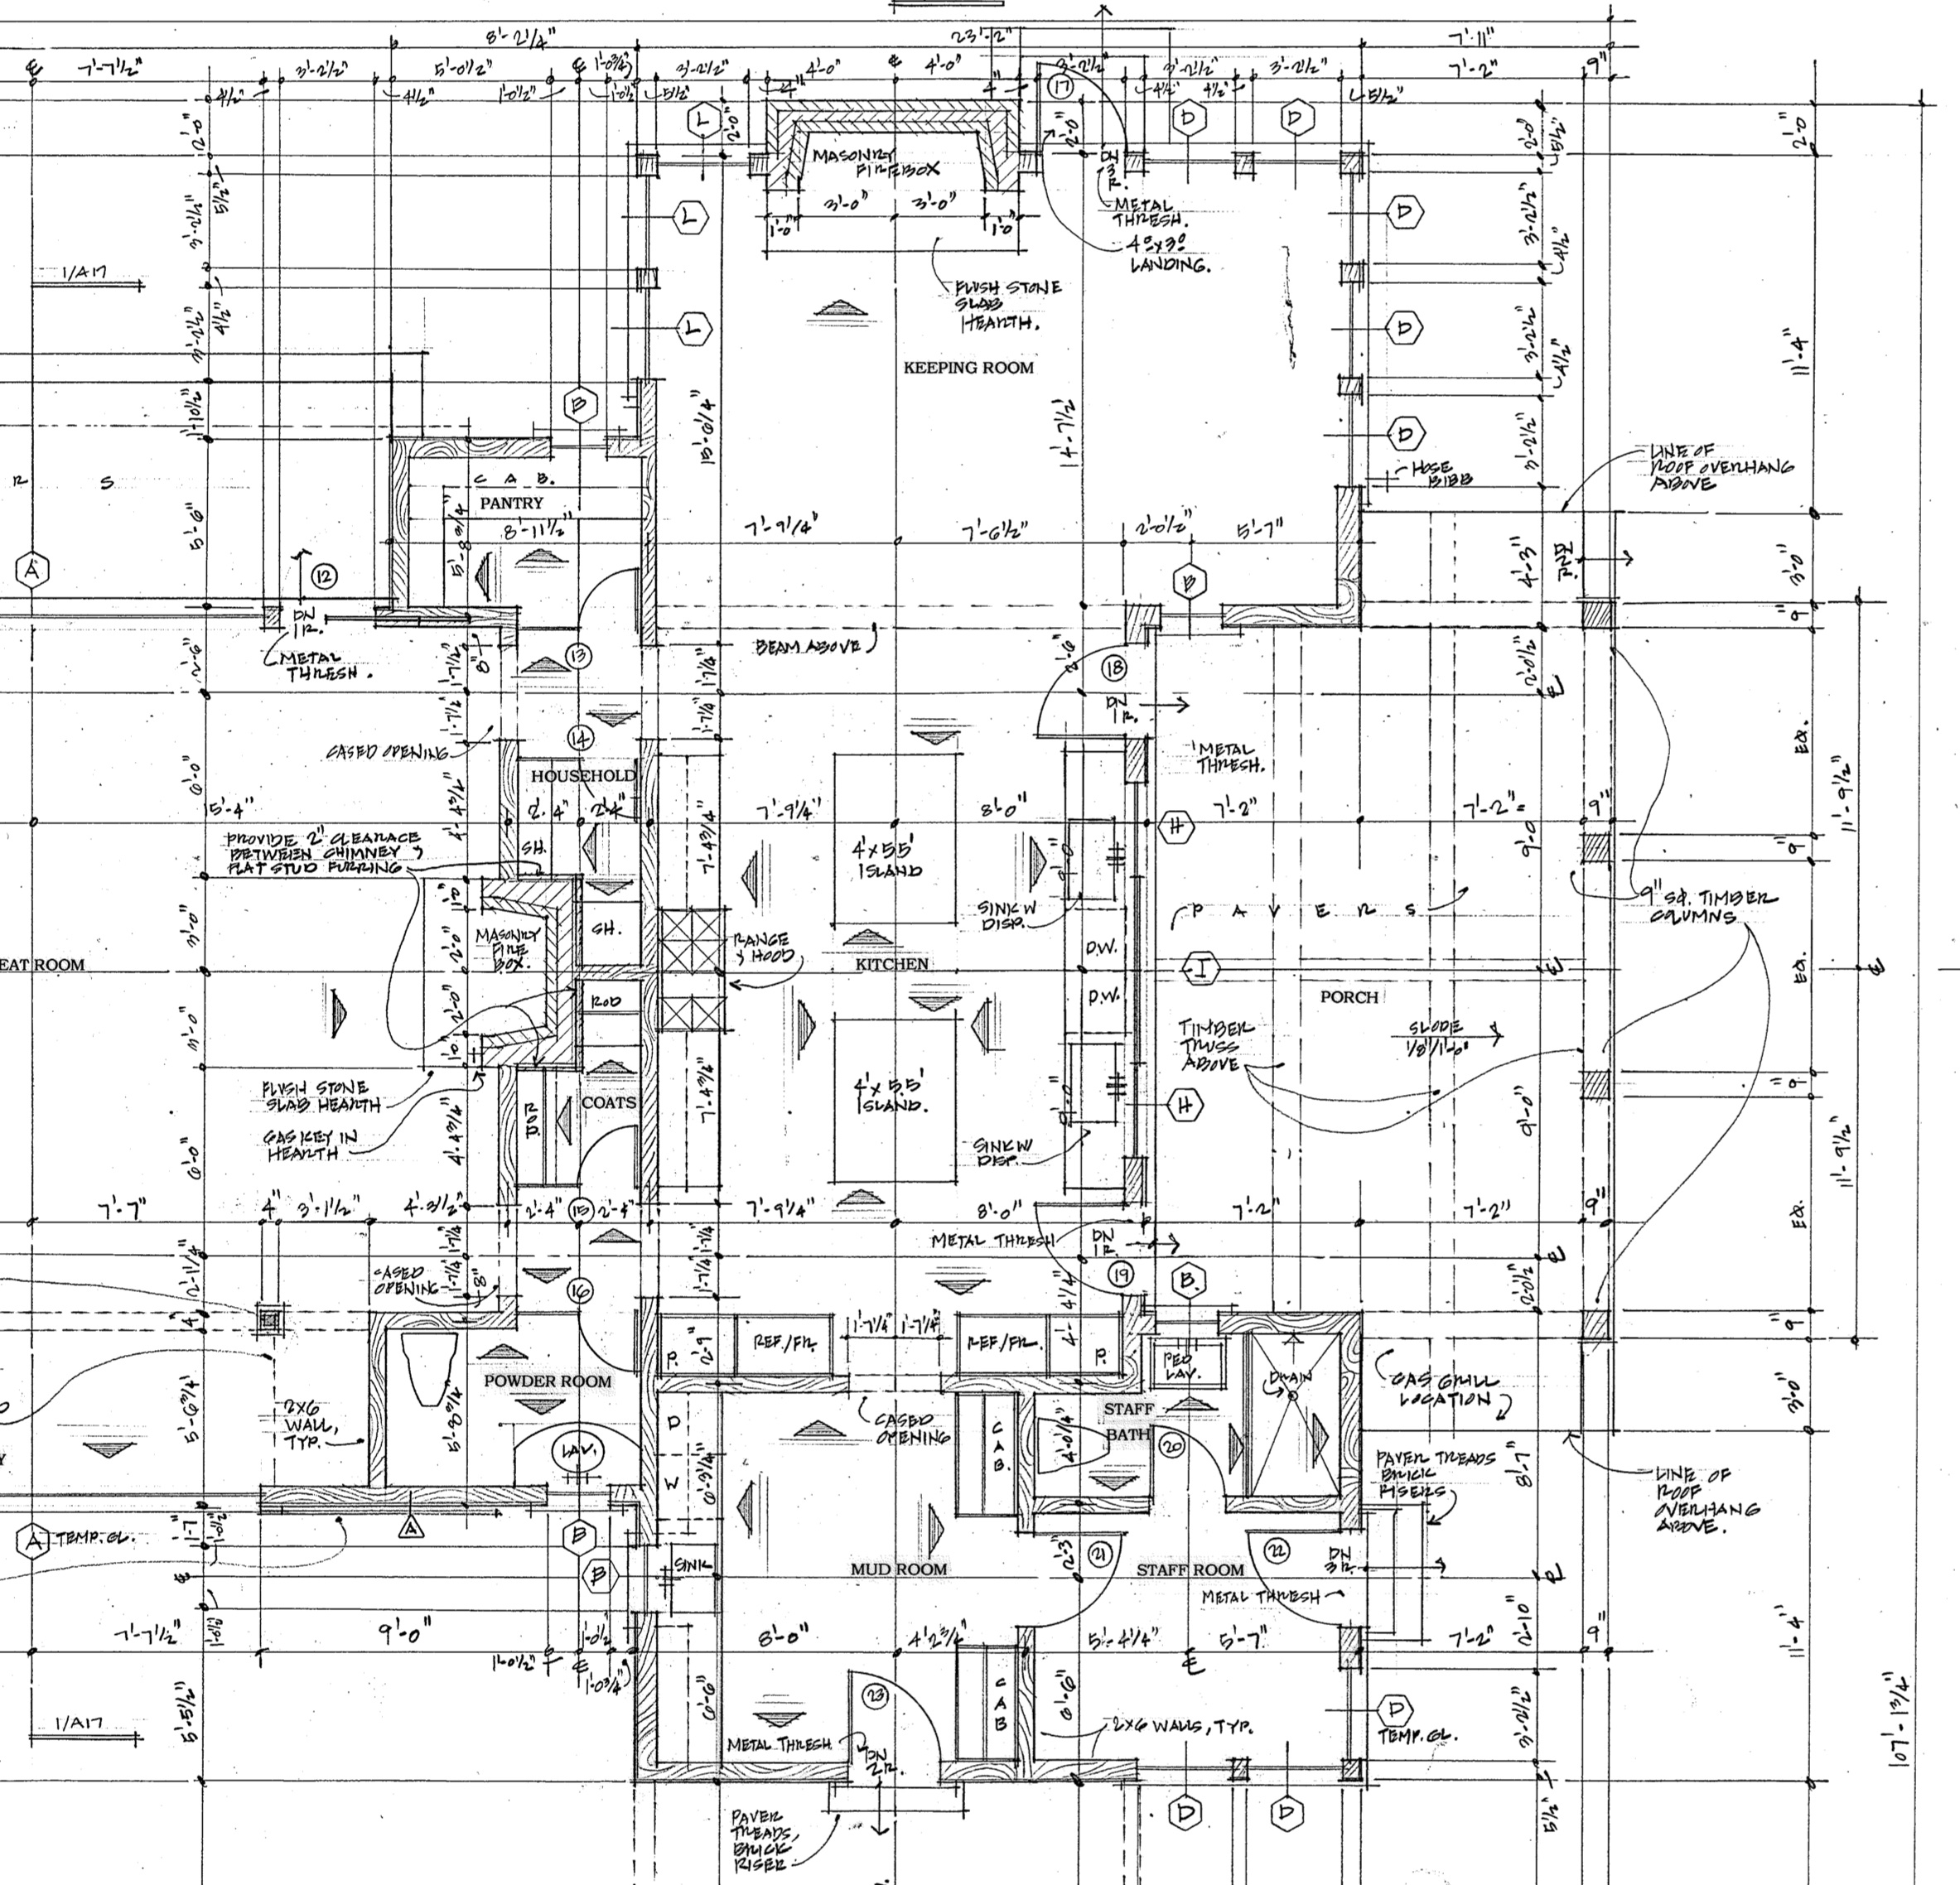 Architectural drawing rich image and wallpaper for Building planning and drawing free pdf download